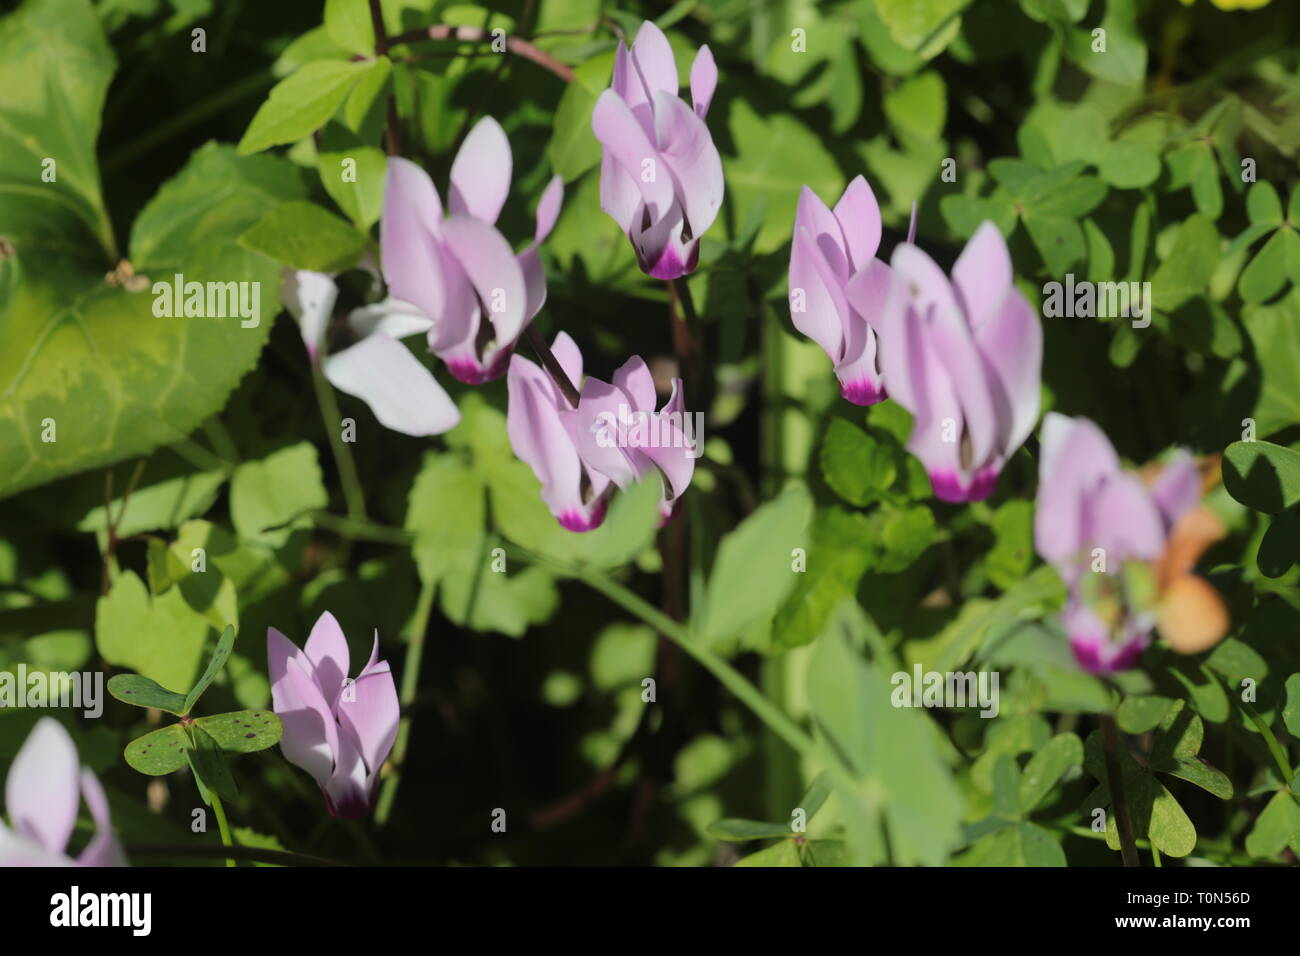 Cyclamen persicum, the Persian cyclamen, is a species of flowering herbaceous perennial plant growing from a tuber, native to rocky hillsides, shrubla Stock Photo